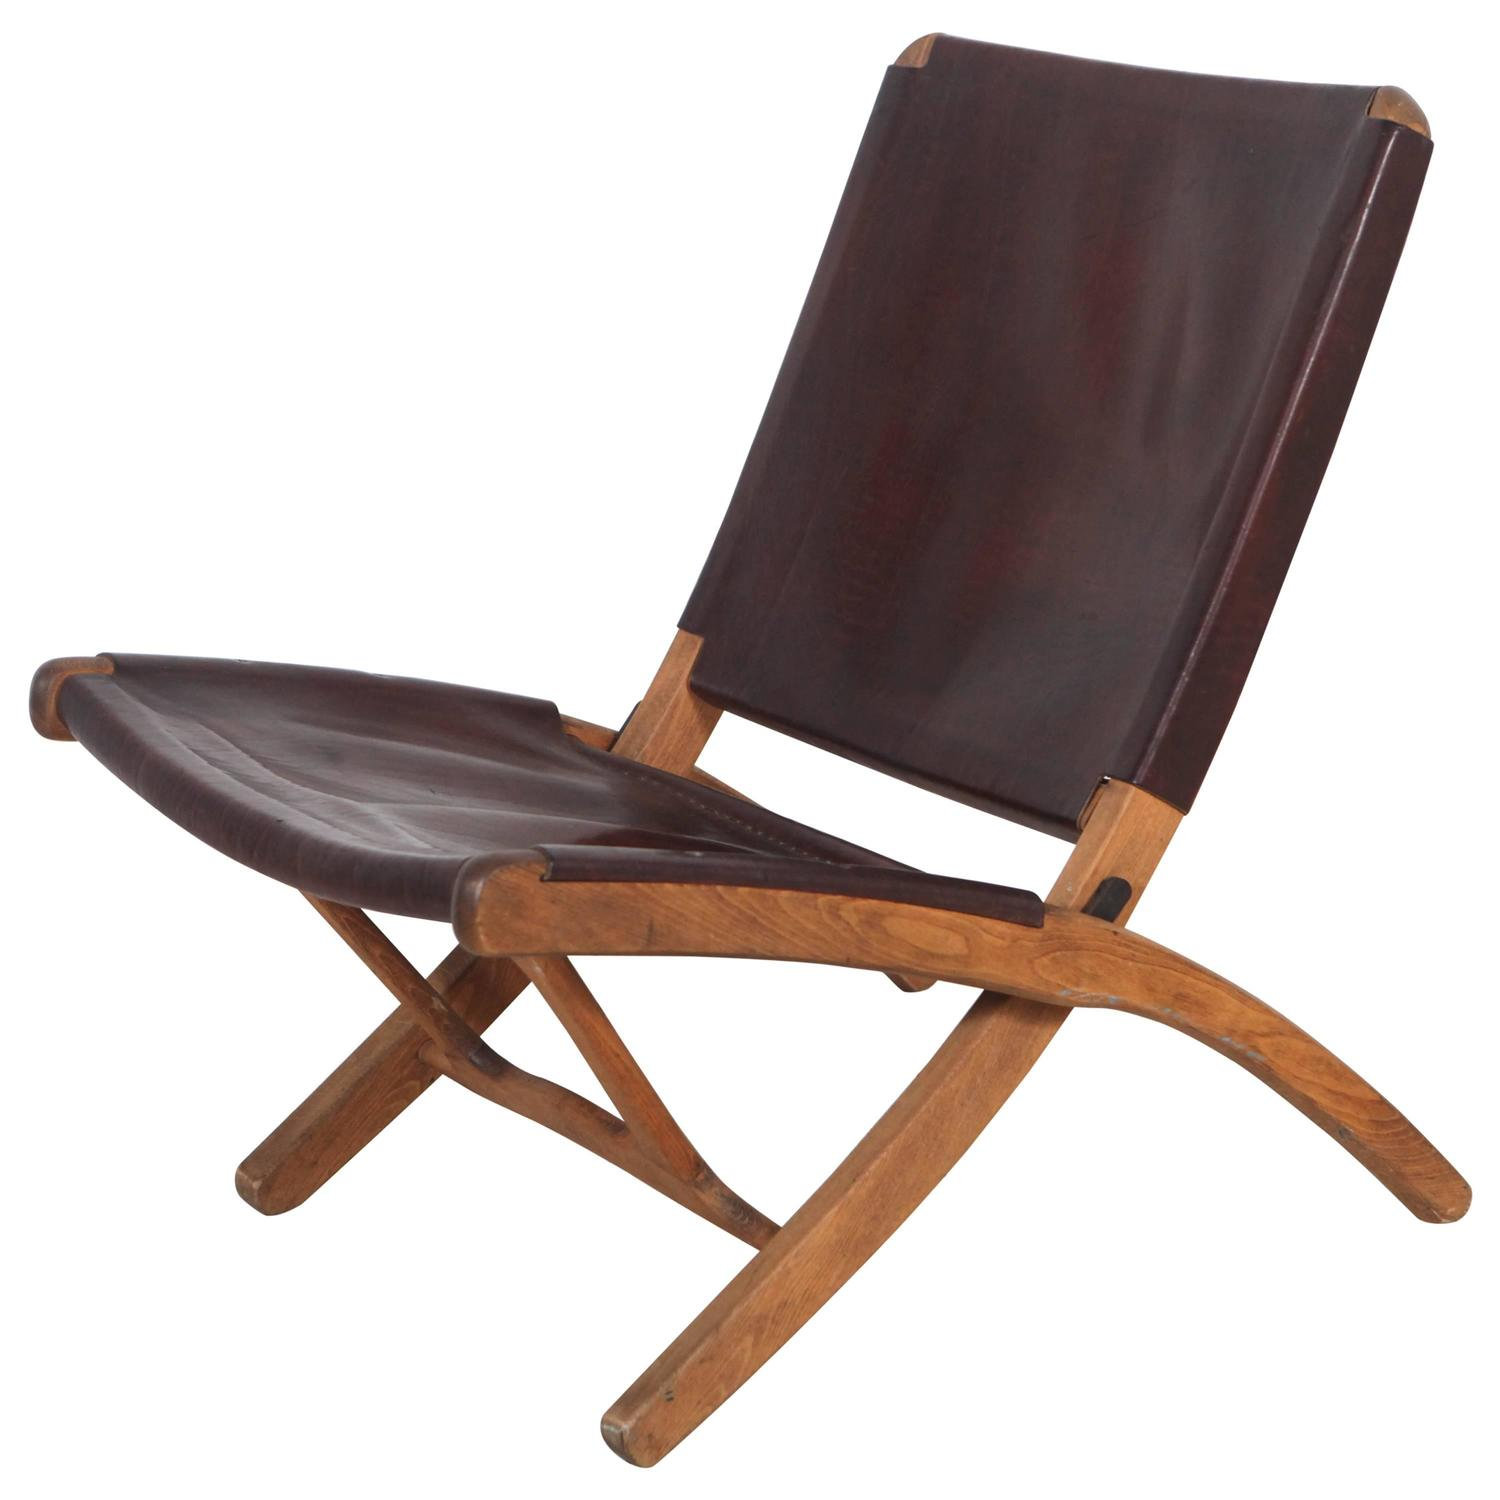 Italian leather and wood folding chair at 1stdibs for Furniture chairs